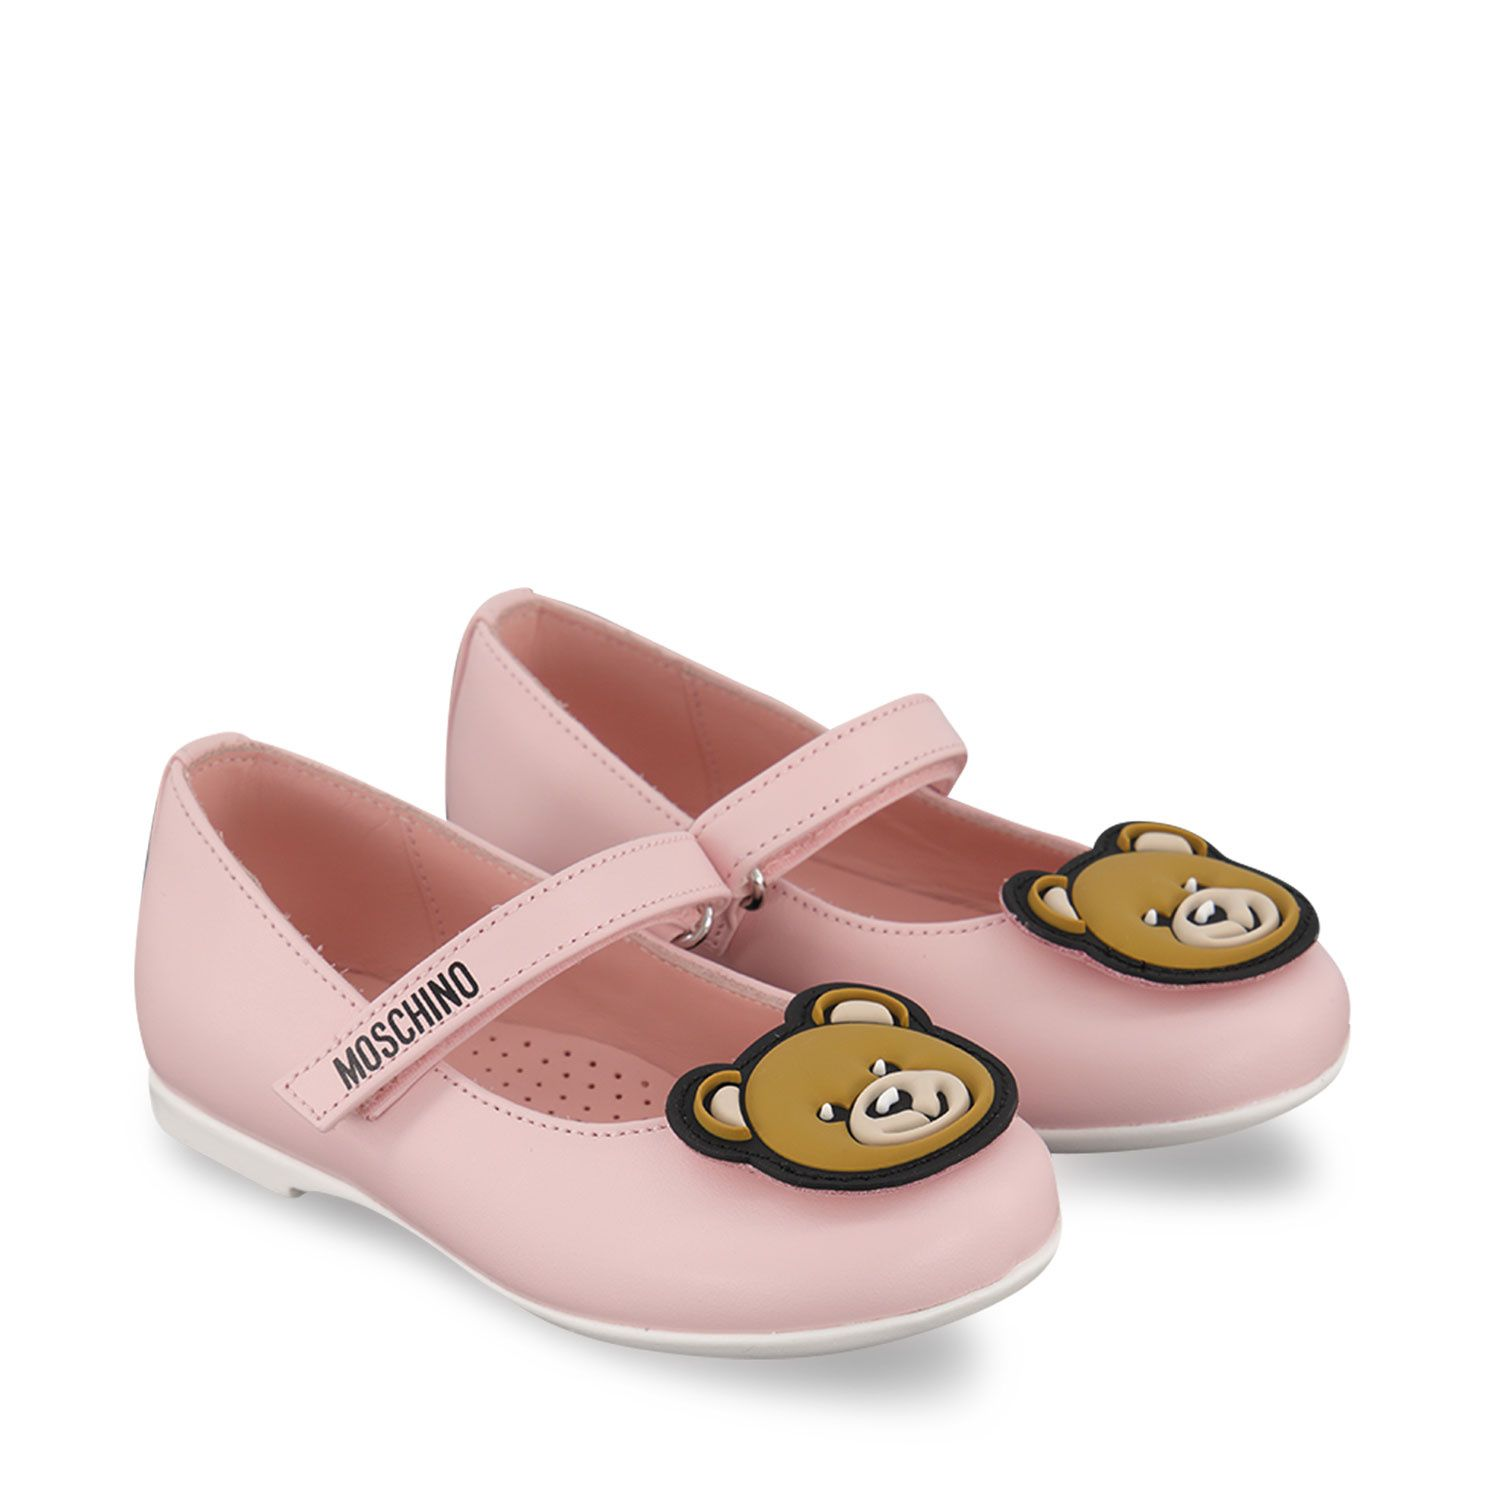 Picture of Moschino 67367 kids sandals light pink